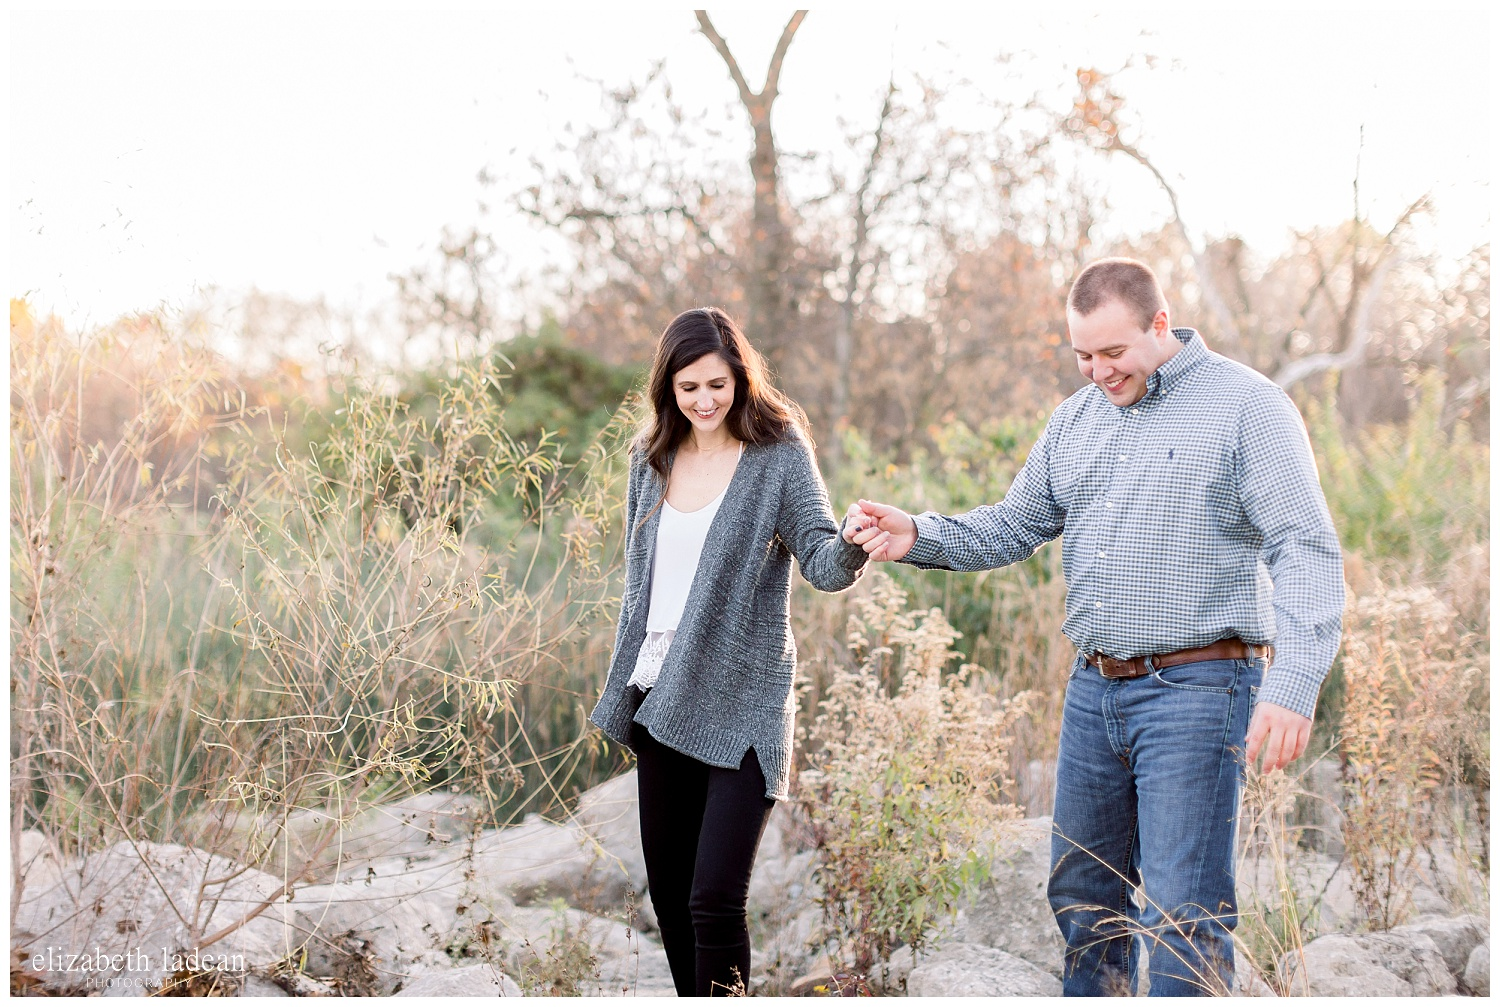 Kansas-City-Fall-Engagement-Photography-S+D-2018-elizabeth-ladean-photography-photo_2399.jpg